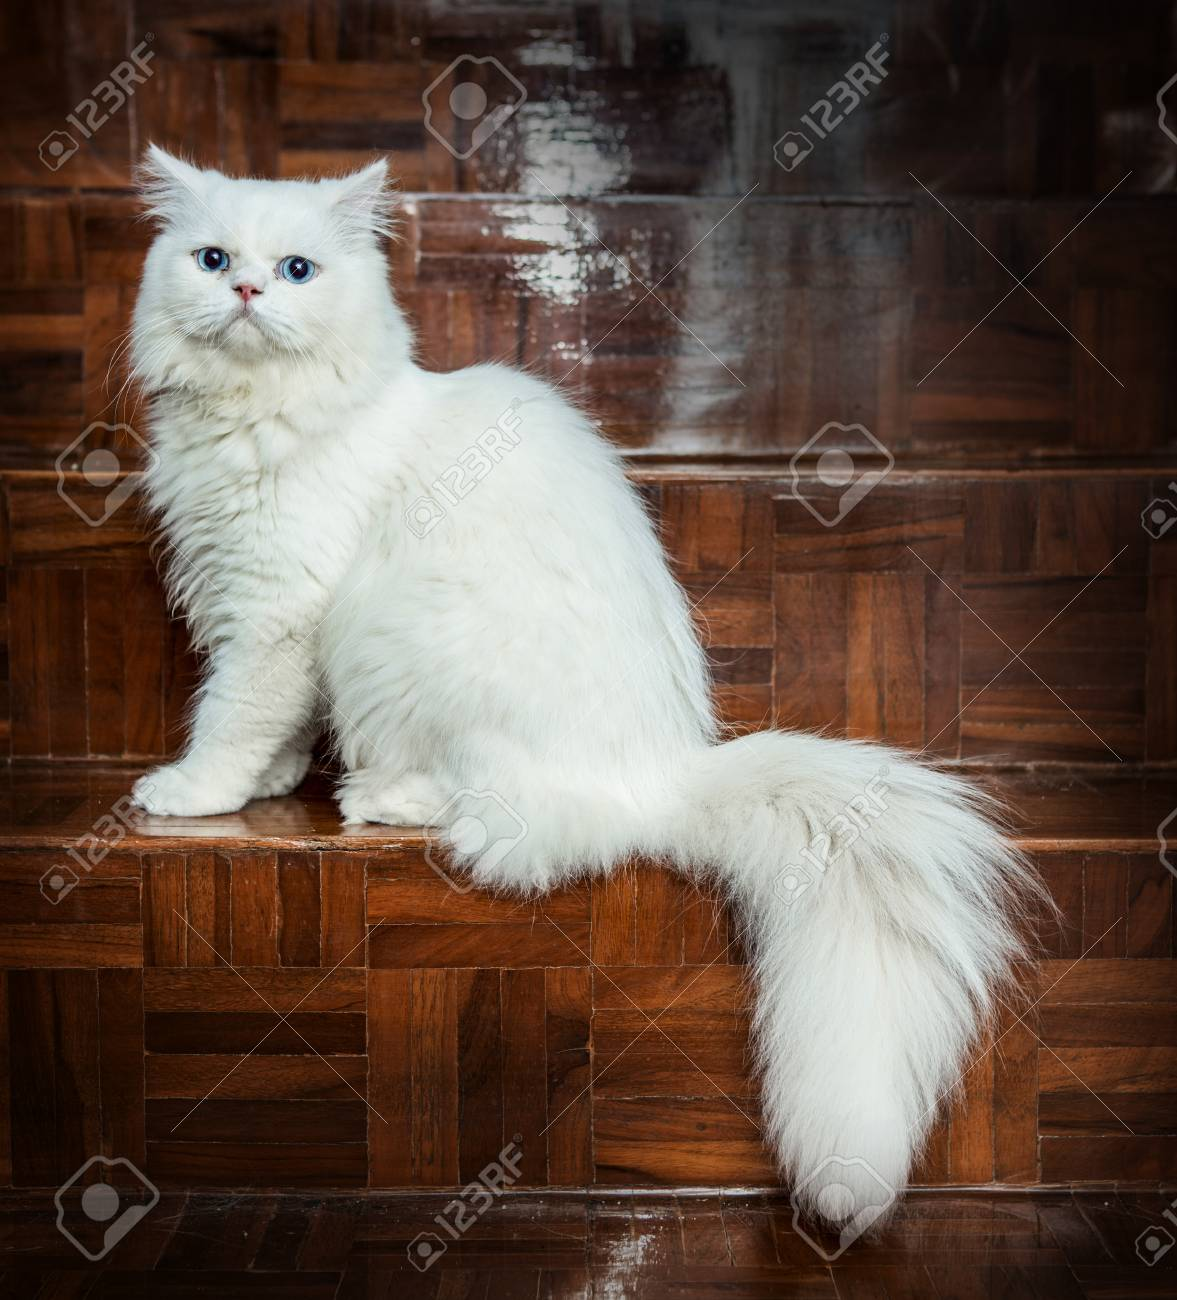 White And Blue Eyes Persian Cats Stock Photo Picture And Royalty